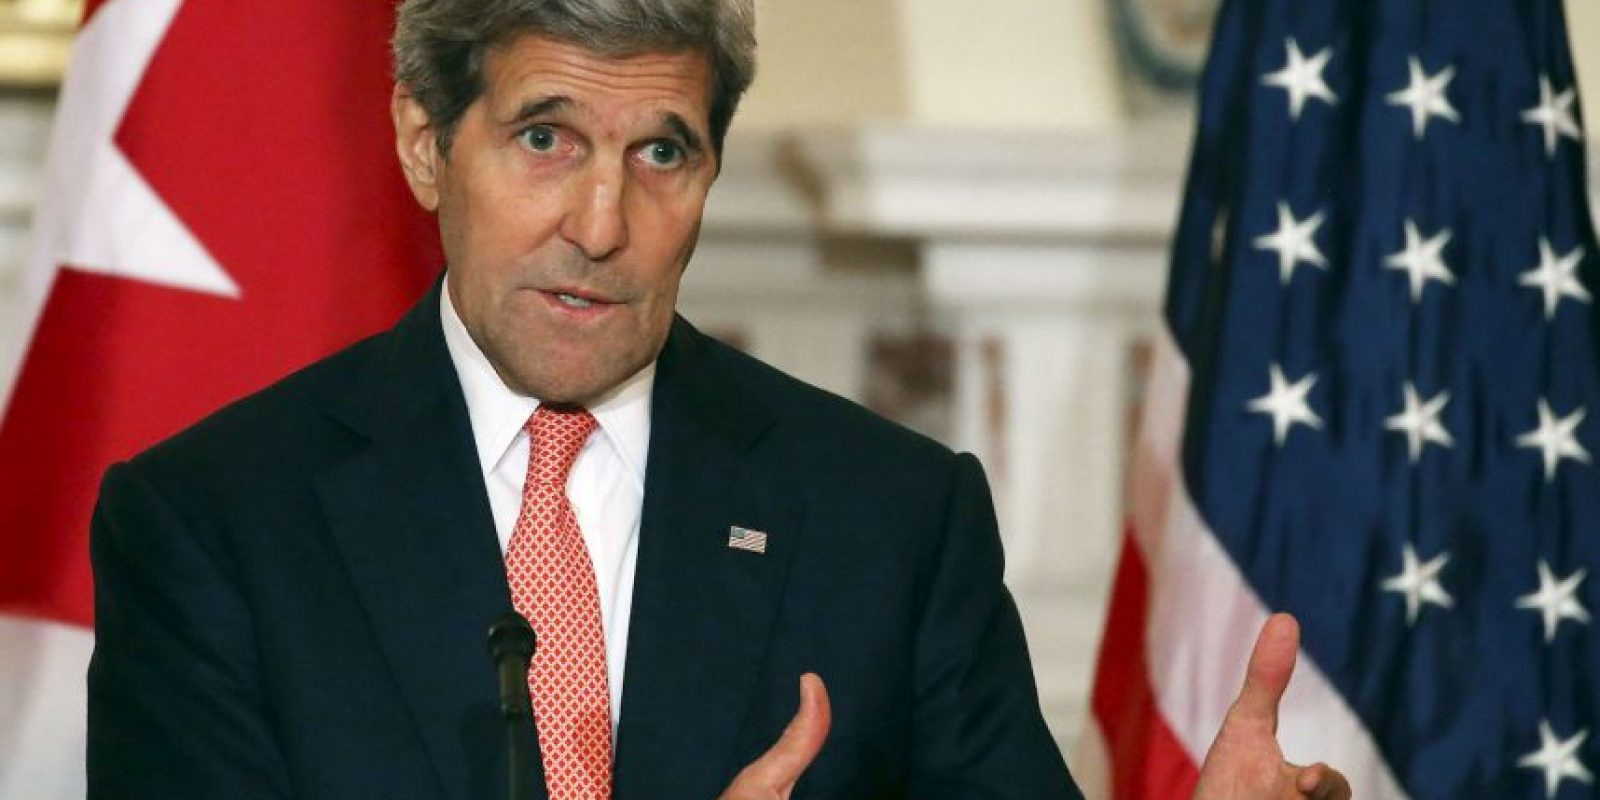 John Kerry, secretario de Estado, reabrirá la embajada estadounidense en La Habana. Foto: Getty Images